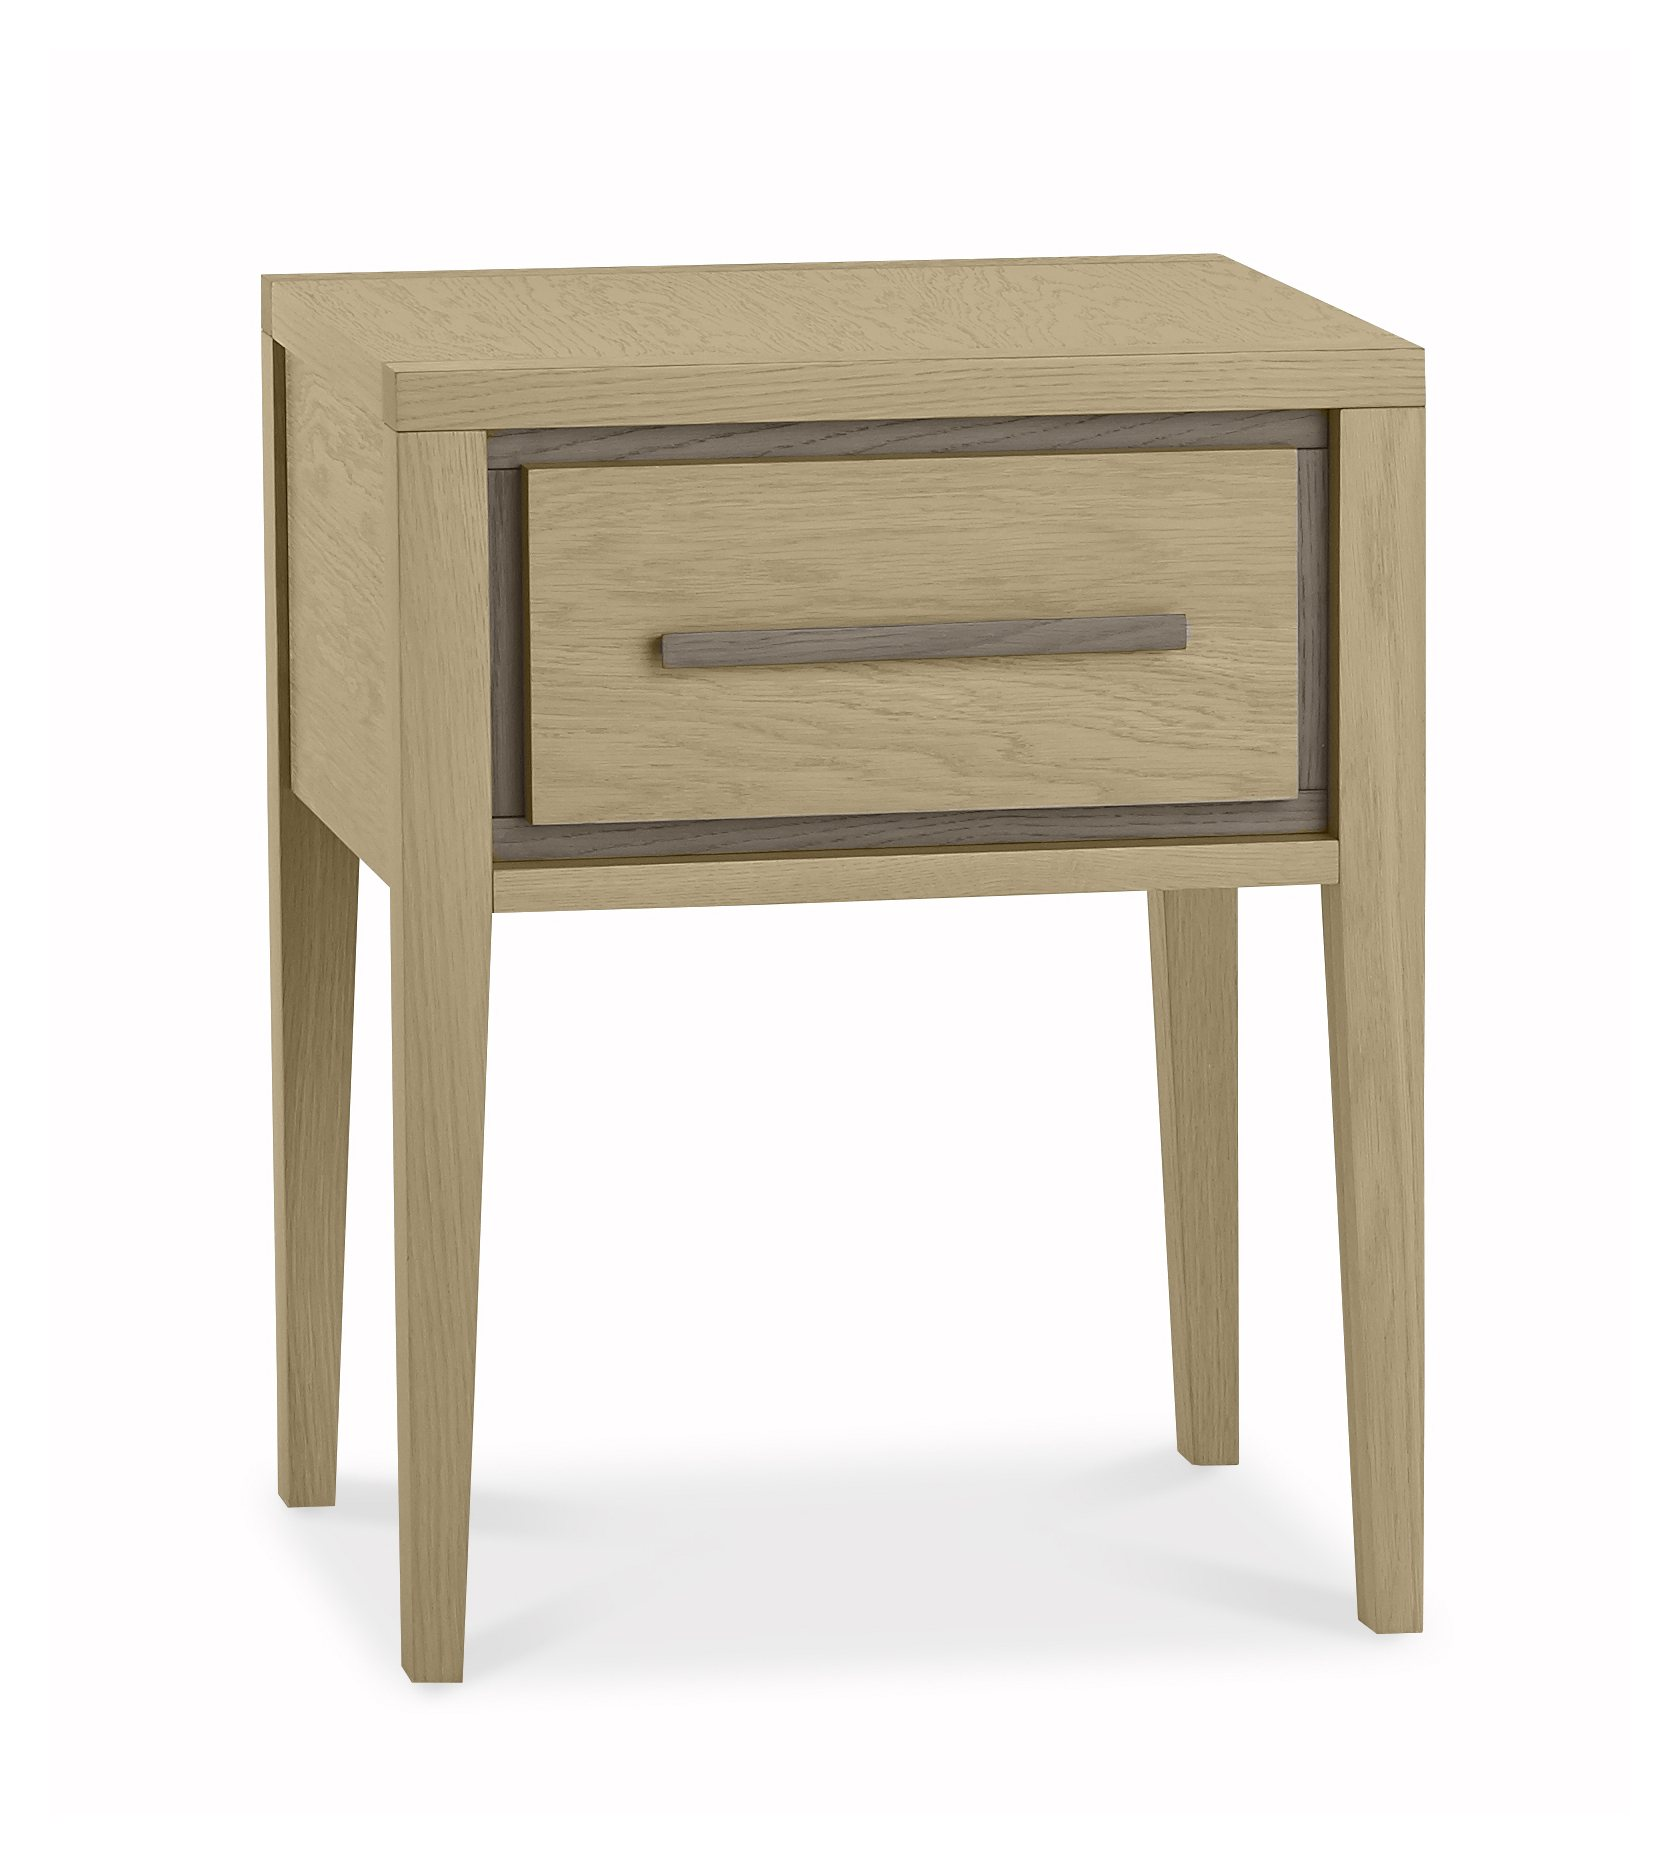 CARELL 1DR NIGHTSTAND - ANGLE DETAIL